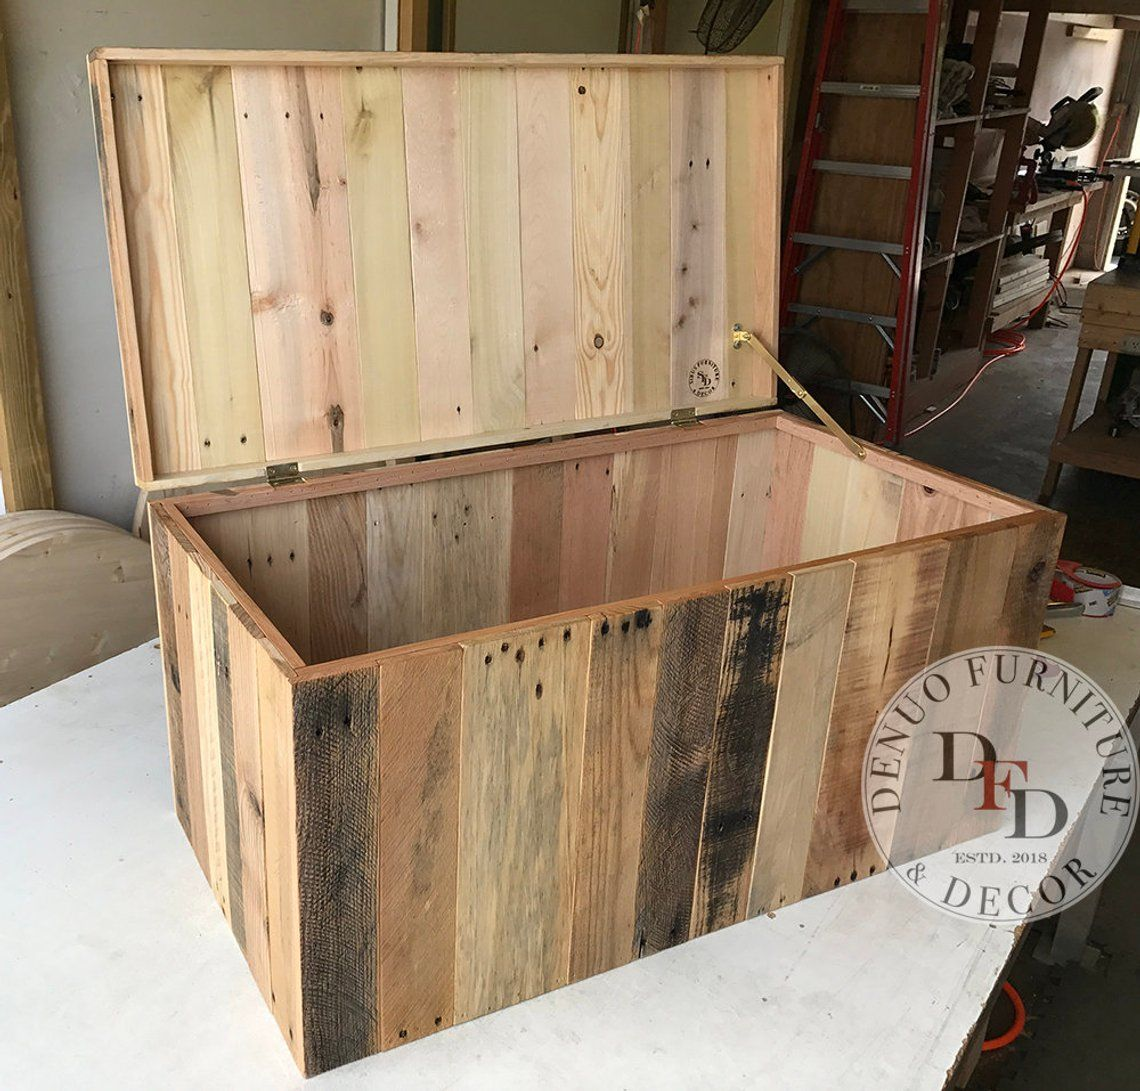 Pallet Chest Sale Reclaimed Pallet Wood Reclaimed Wood Chest Pallet With Images Pallet Diy Pallet Chest Diy Pallet Projects